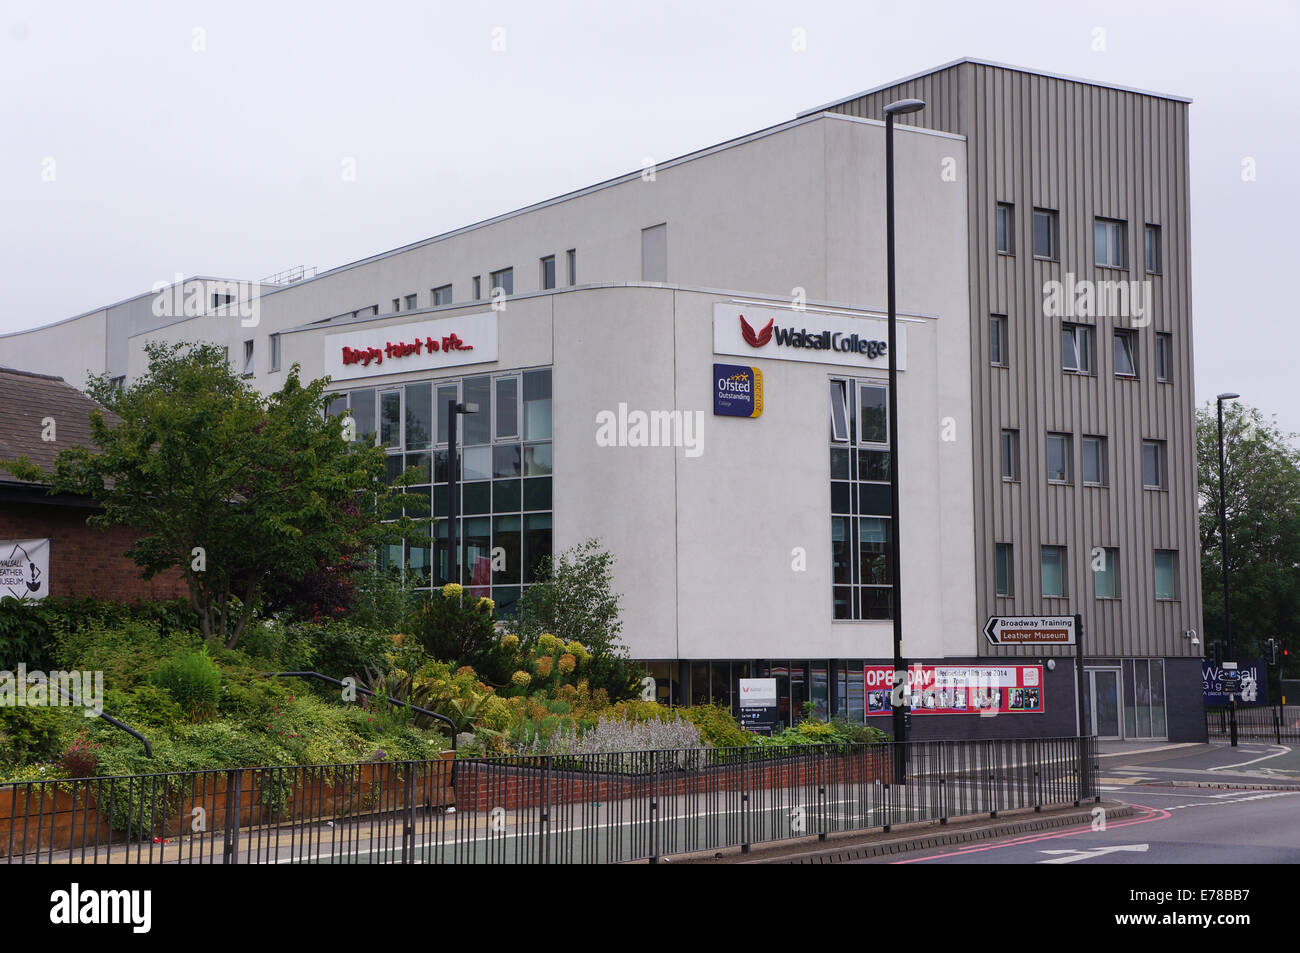 walsall college - walsall UK - Stock Image